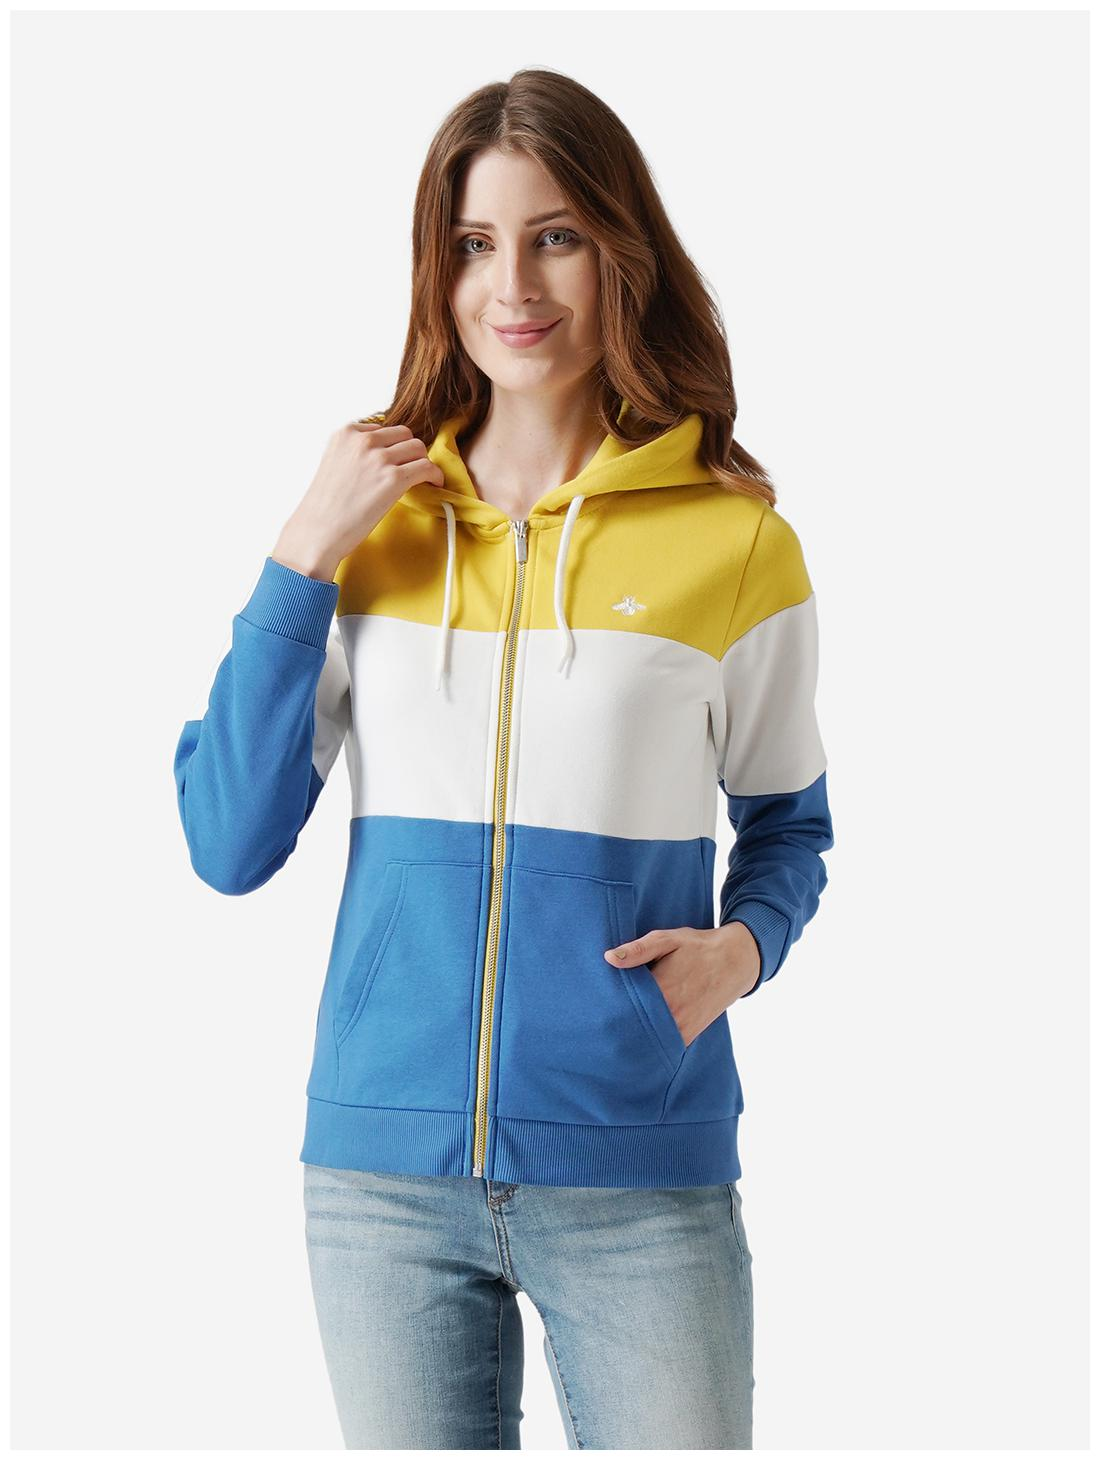 https://assetscdn1.paytm.com/images/catalog/product/A/AP/APPMODE-BY-RED-MIRZ250979852BCC7C/1604149795288_0..jpg